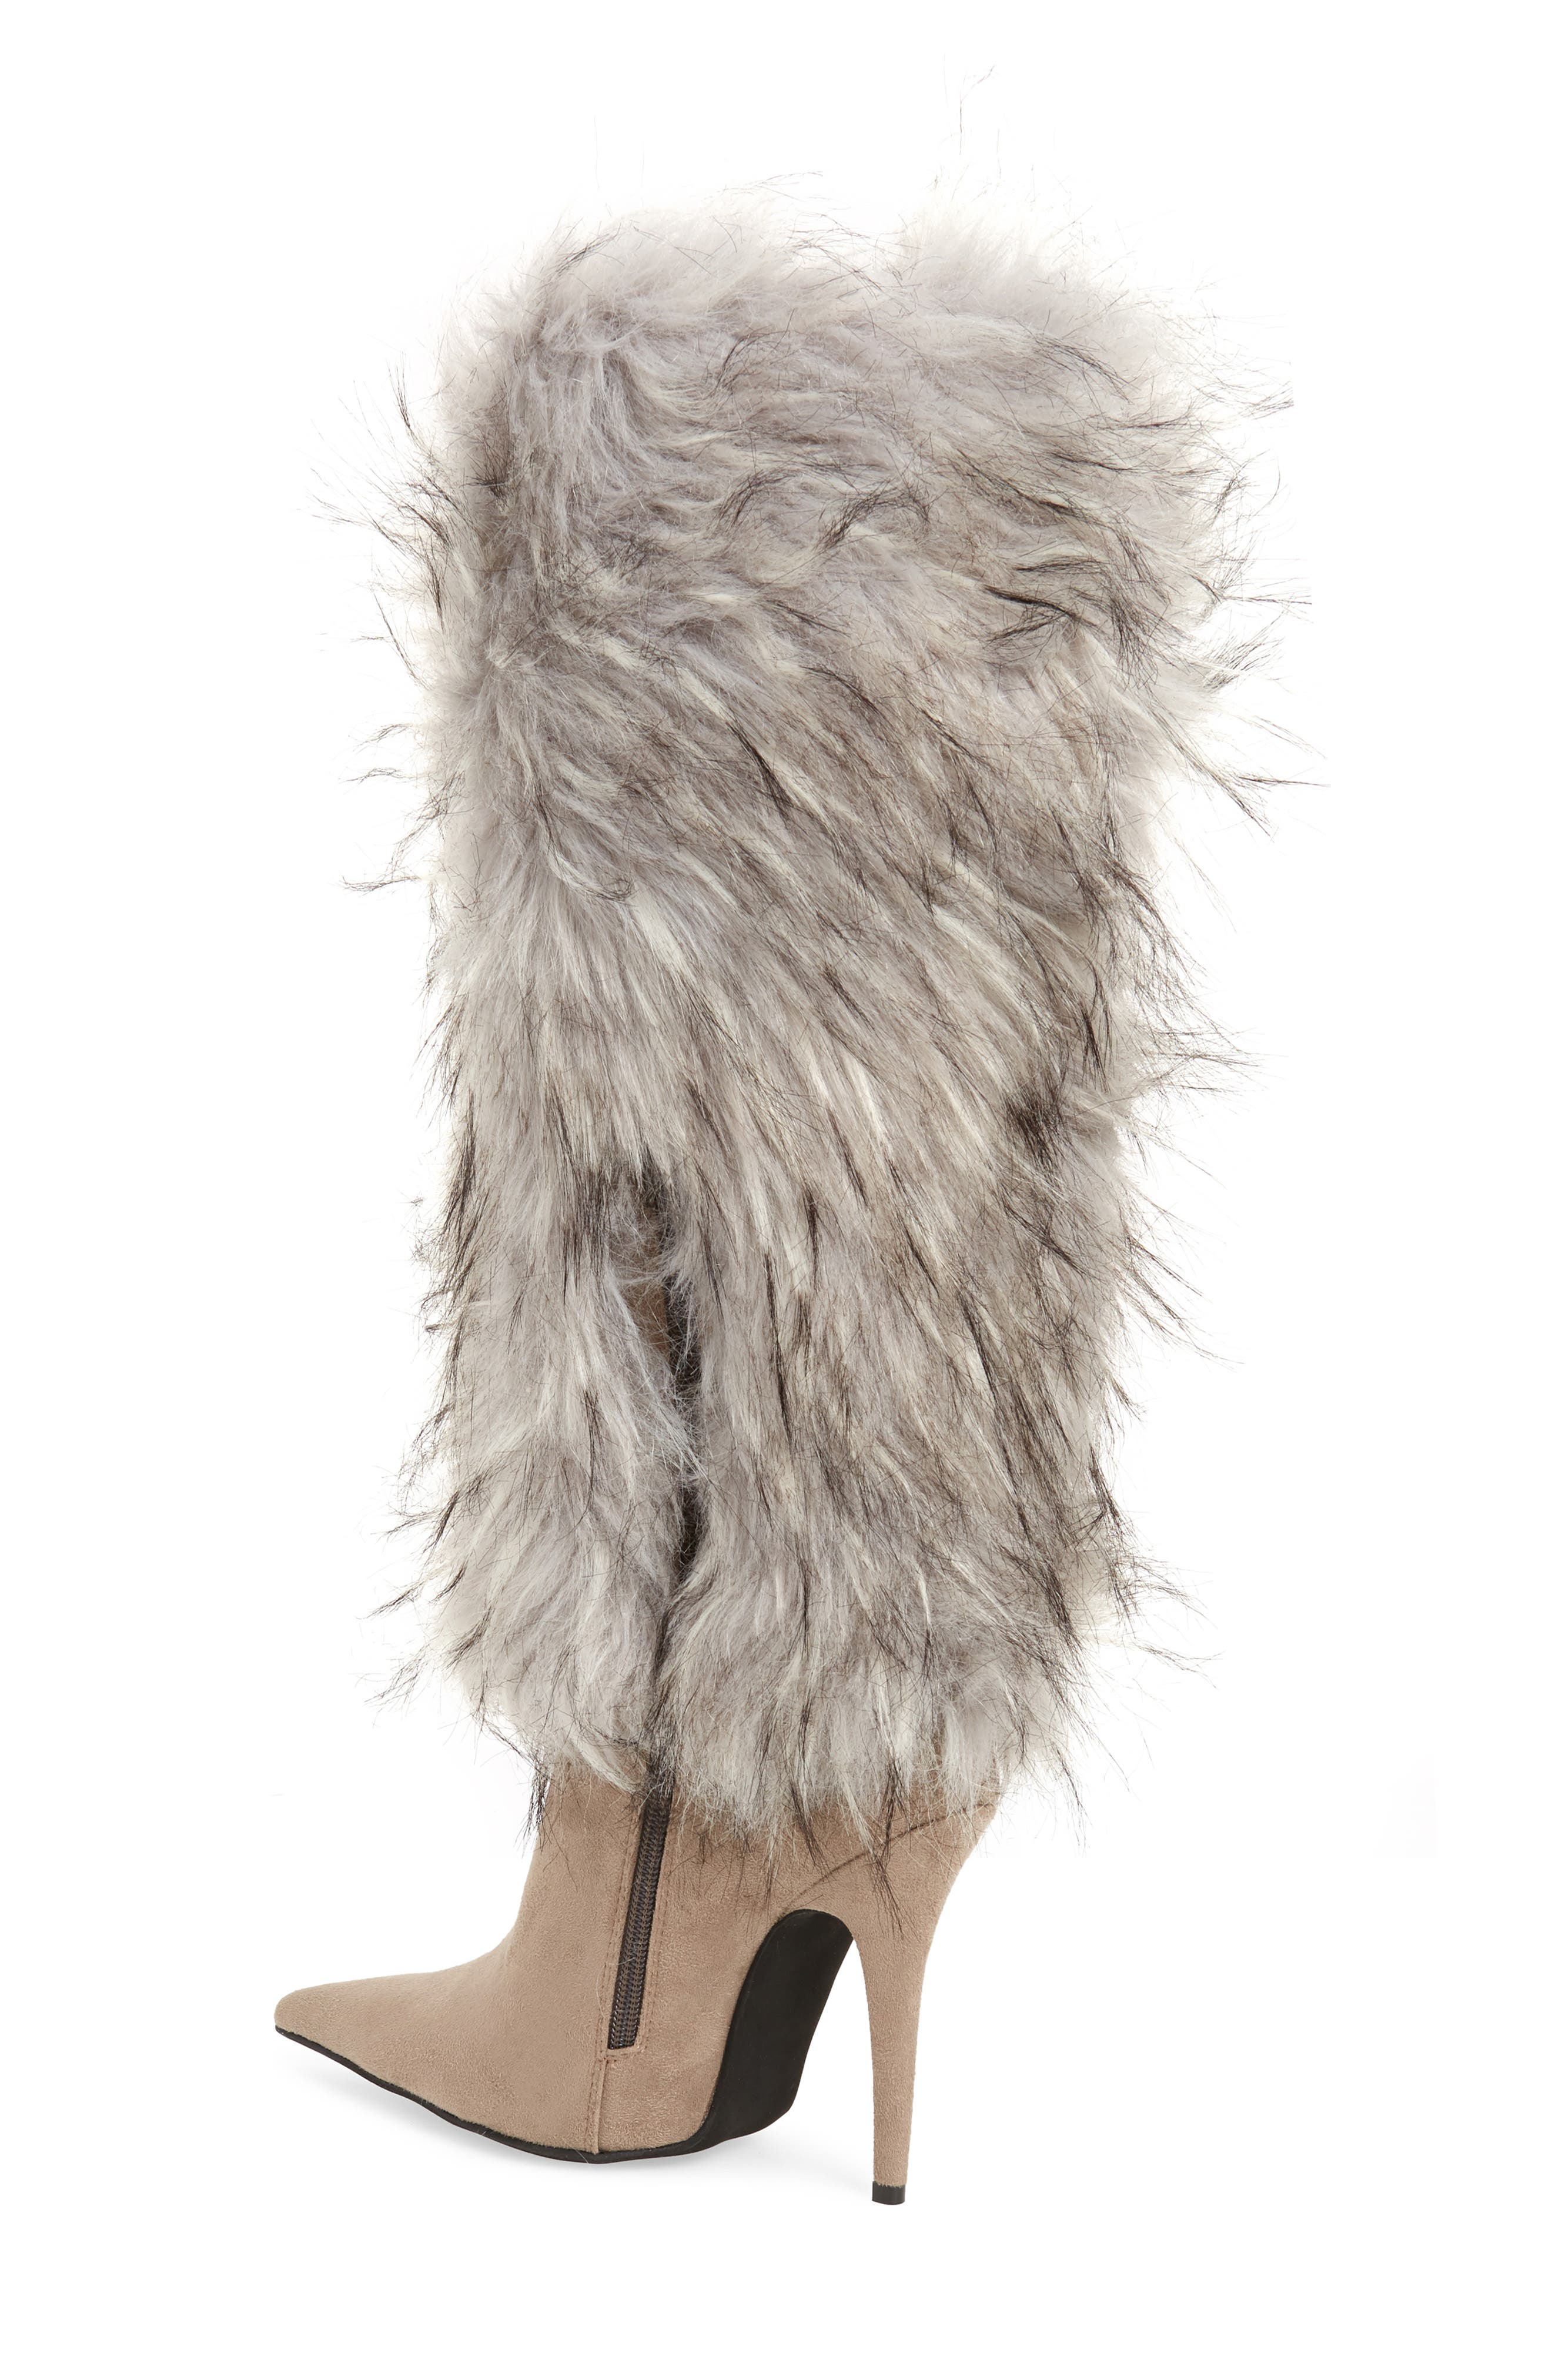 Vedet Faux Fur Knee High Boot,                             Alternate thumbnail 2, color,                             DARK TAUPE SUEDE